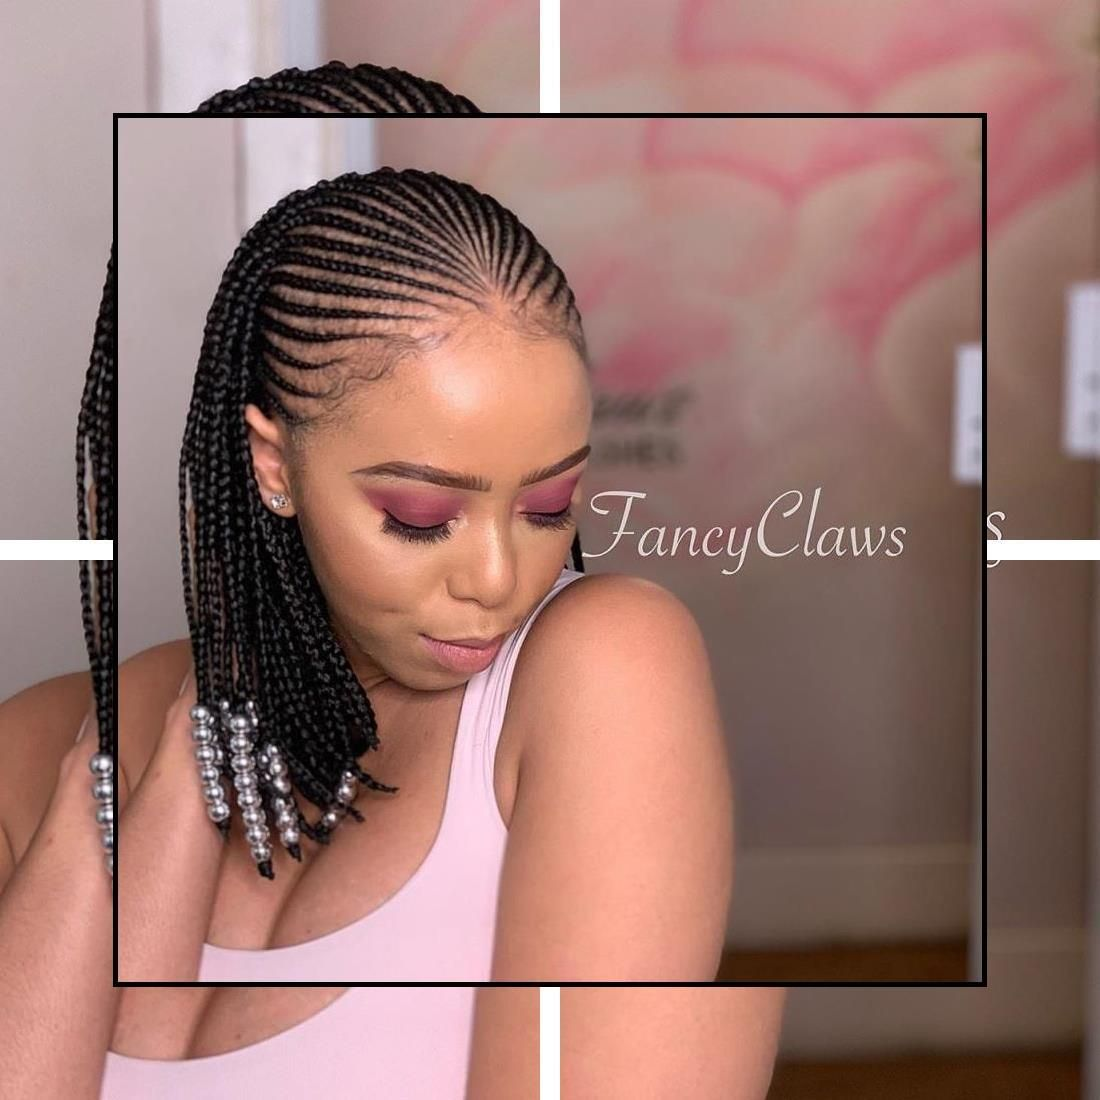 Best Braiding Hairstyles African American Hair 715 Store Khaleesi Wig Best Wet And Wavy Human Hair For Braiding Crew Cut Hairstyles